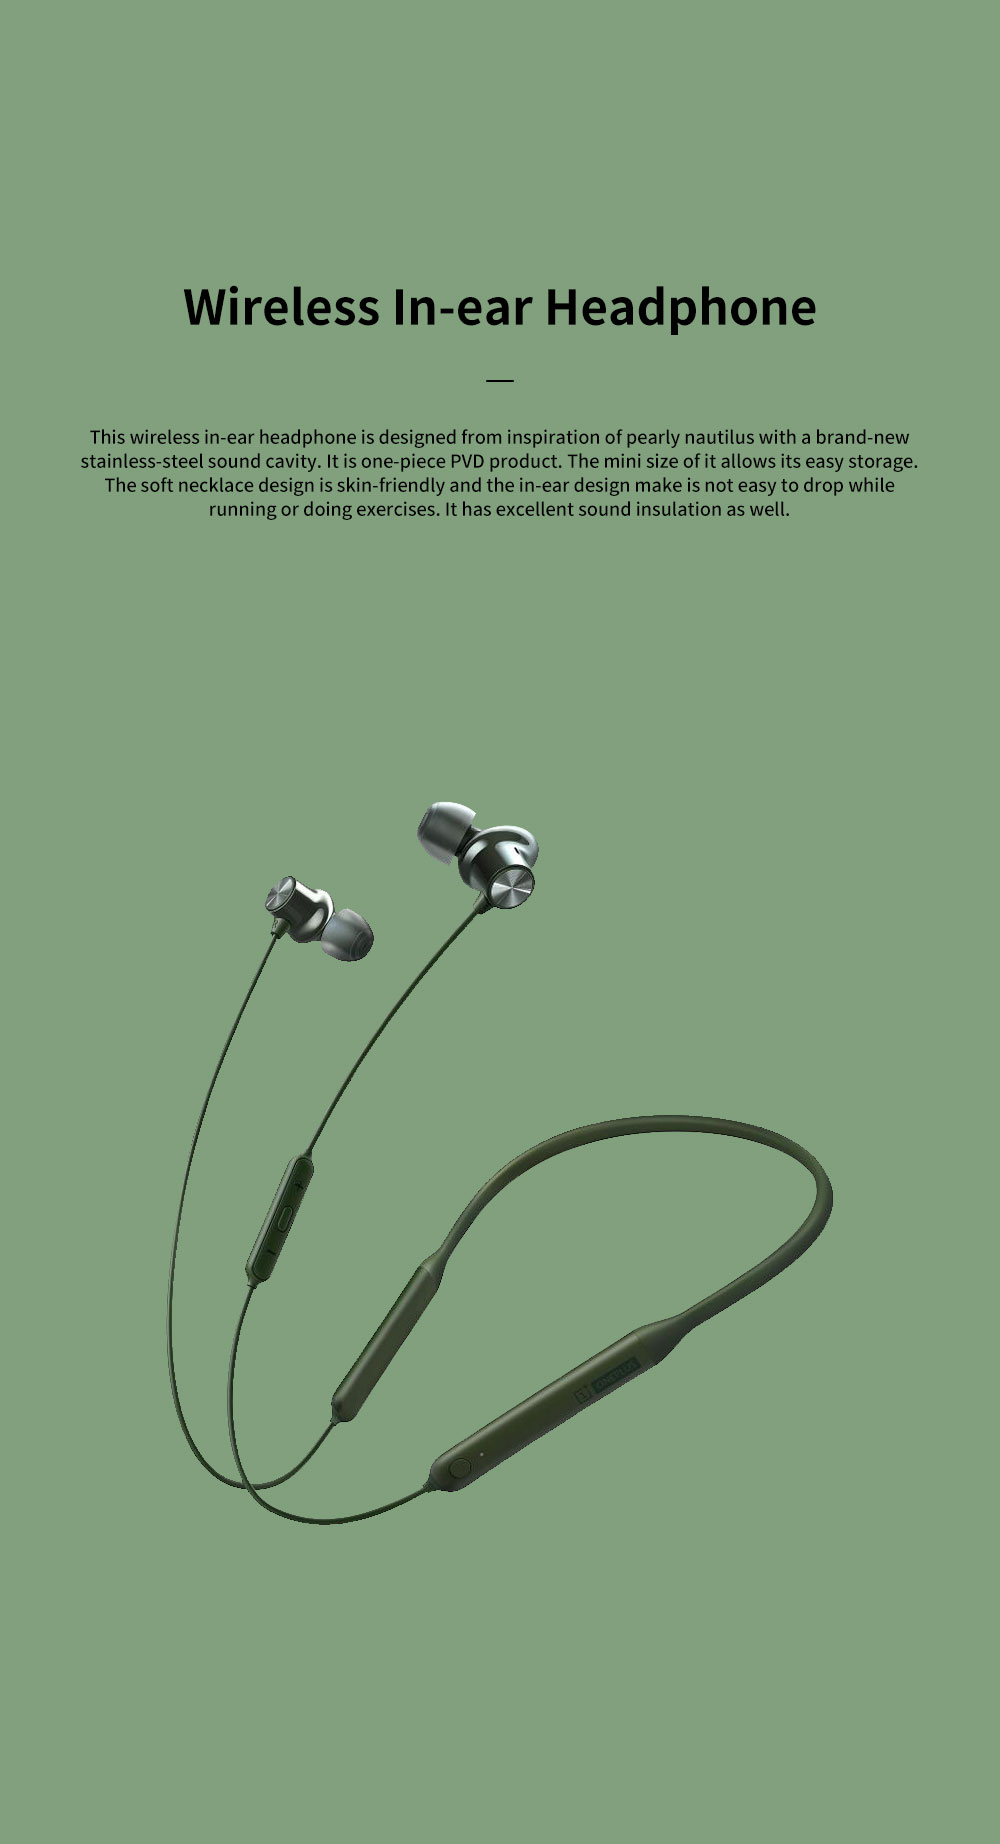 ONEPLUS Bullet Wireless 2 In-ear Headphone for Music Listening Phone Calling Warp Charge and Quick Connection Bluetooth Earphone 0